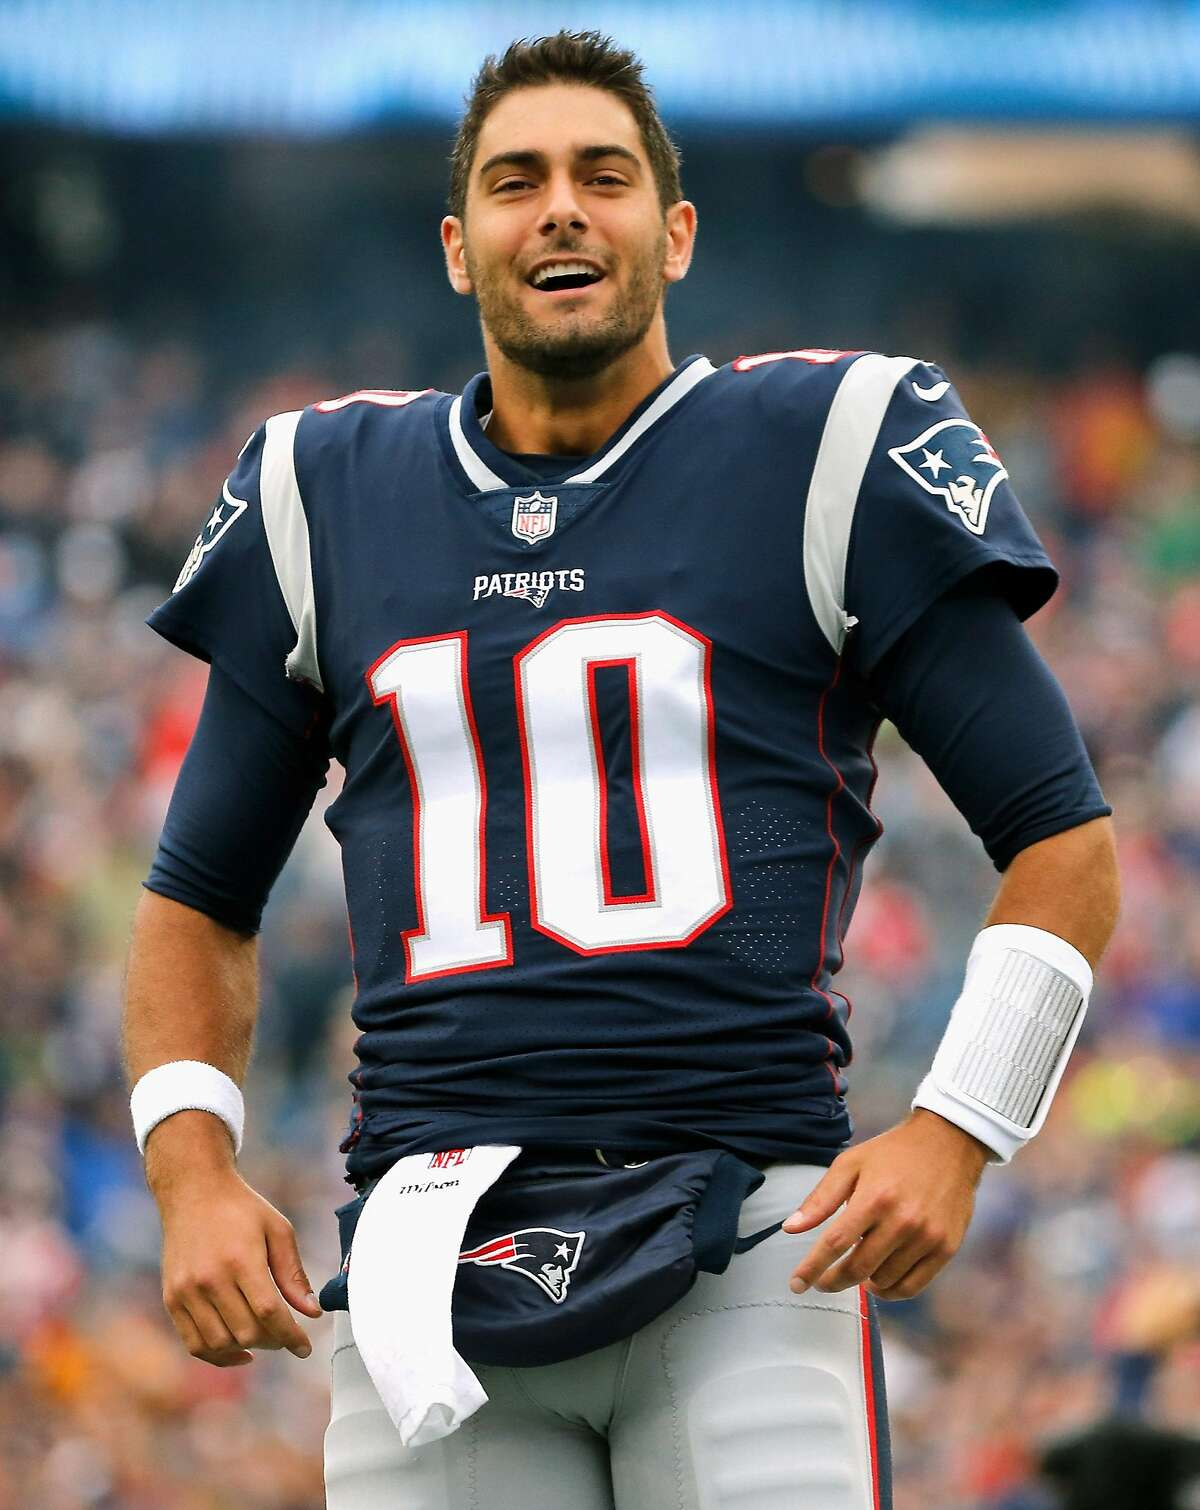 Jimmy Garoppolo of the New England Patriots reacts before a game against the Los Angeles Chargers at Gillette Stadium on October 29, 2017 in Foxboro, Massachusetts.